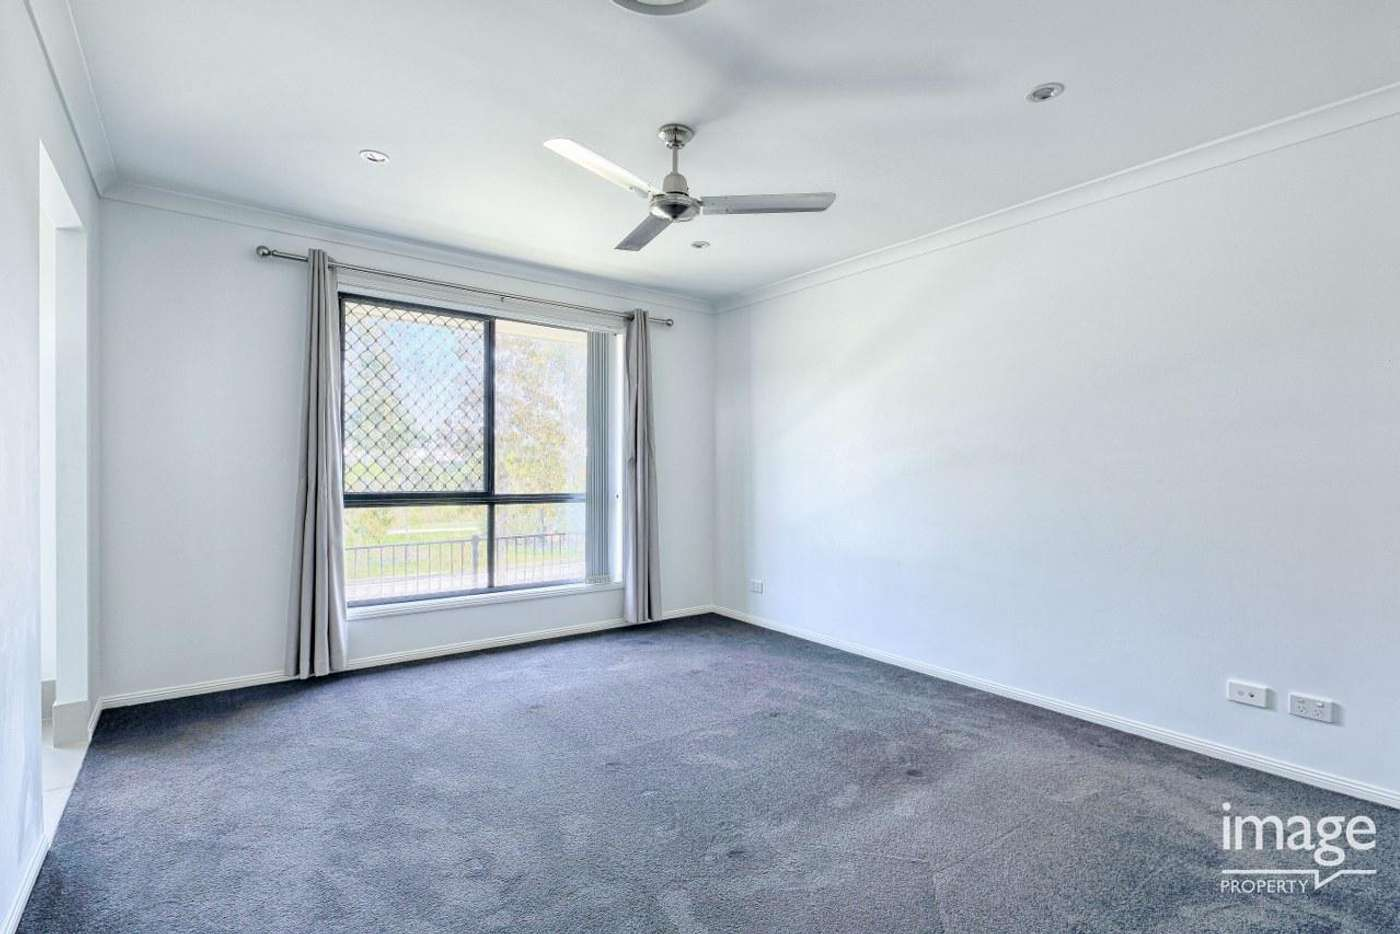 Seventh view of Homely house listing, 2 Grasslands Street, Yarrabilba QLD 4207